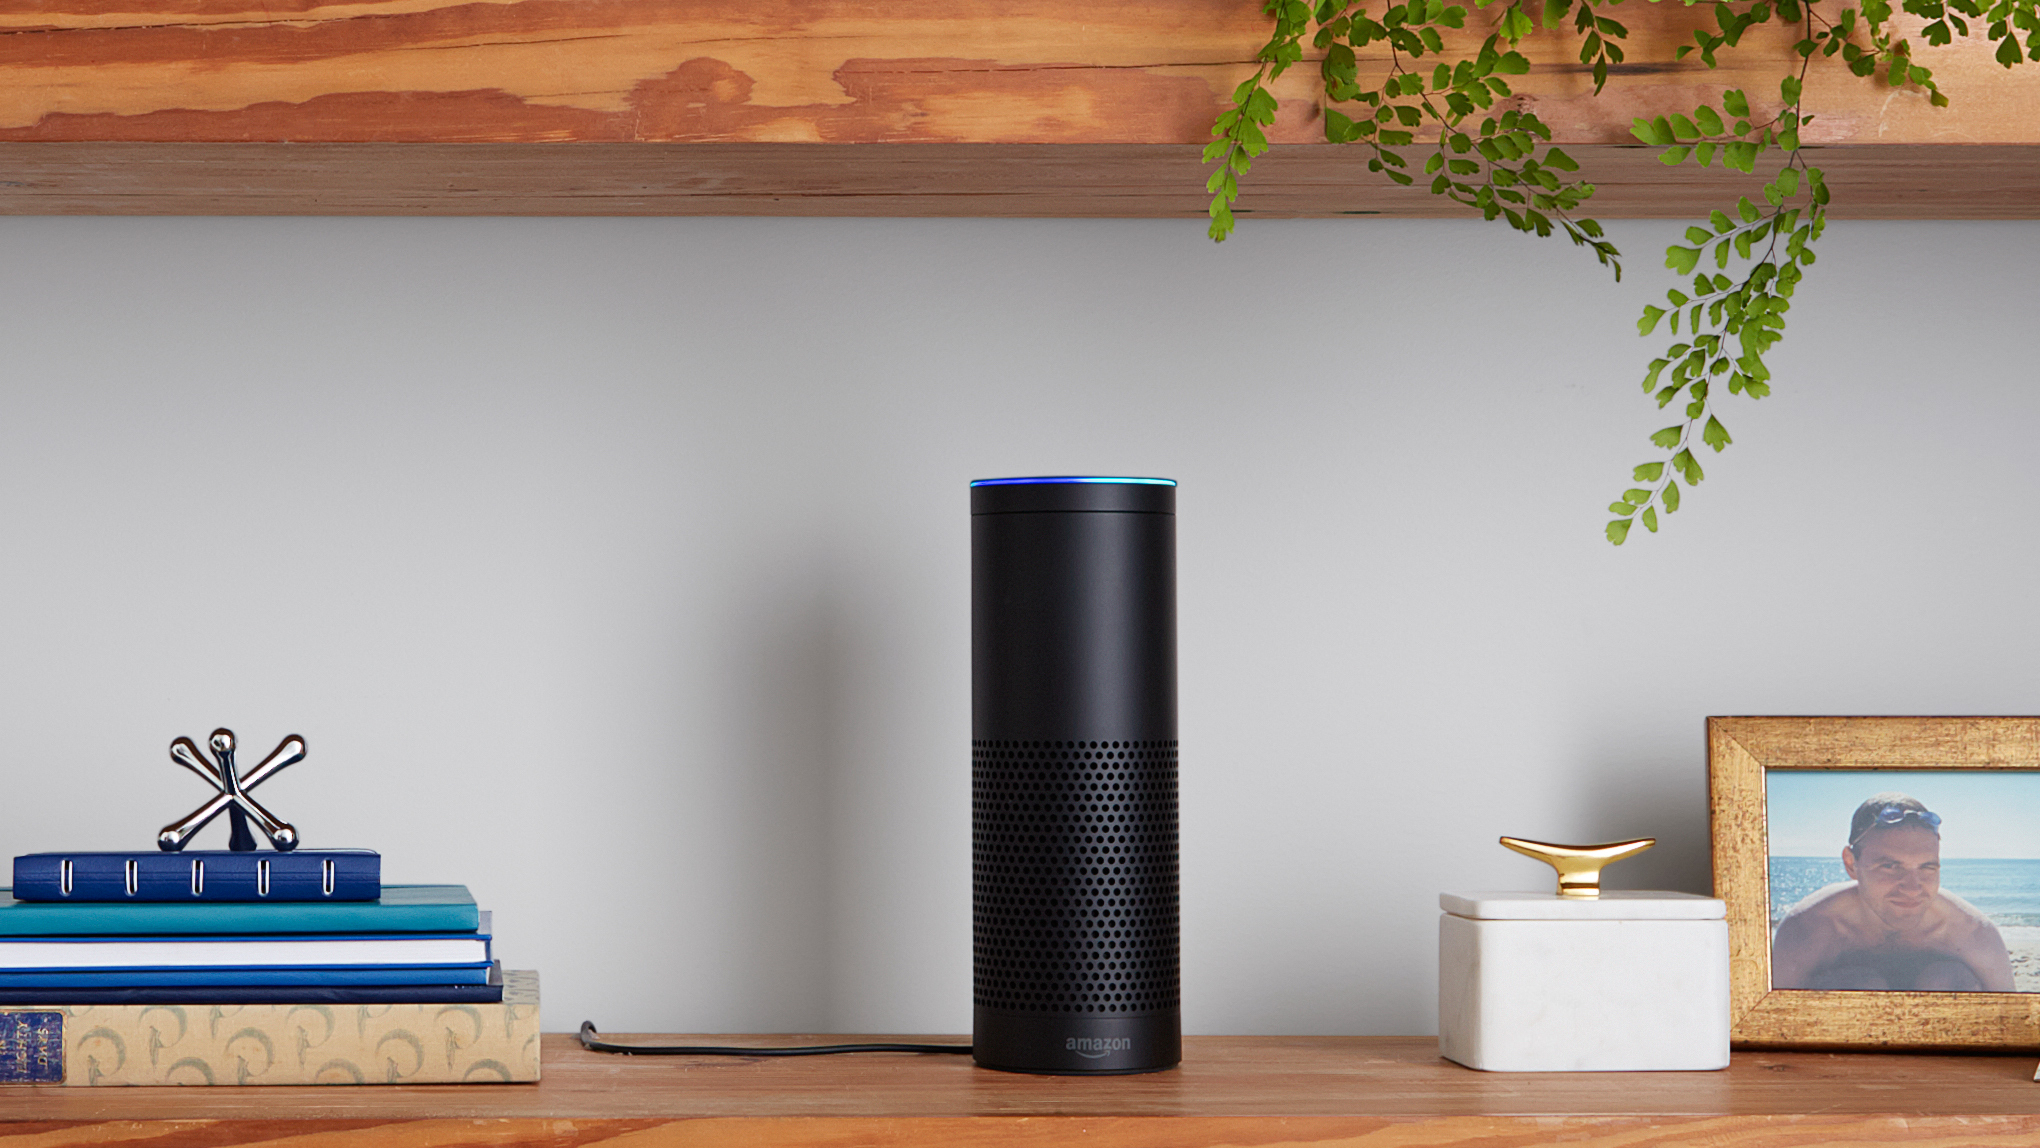 The Alexa In The Amazon Echo Released In The Uk Has A